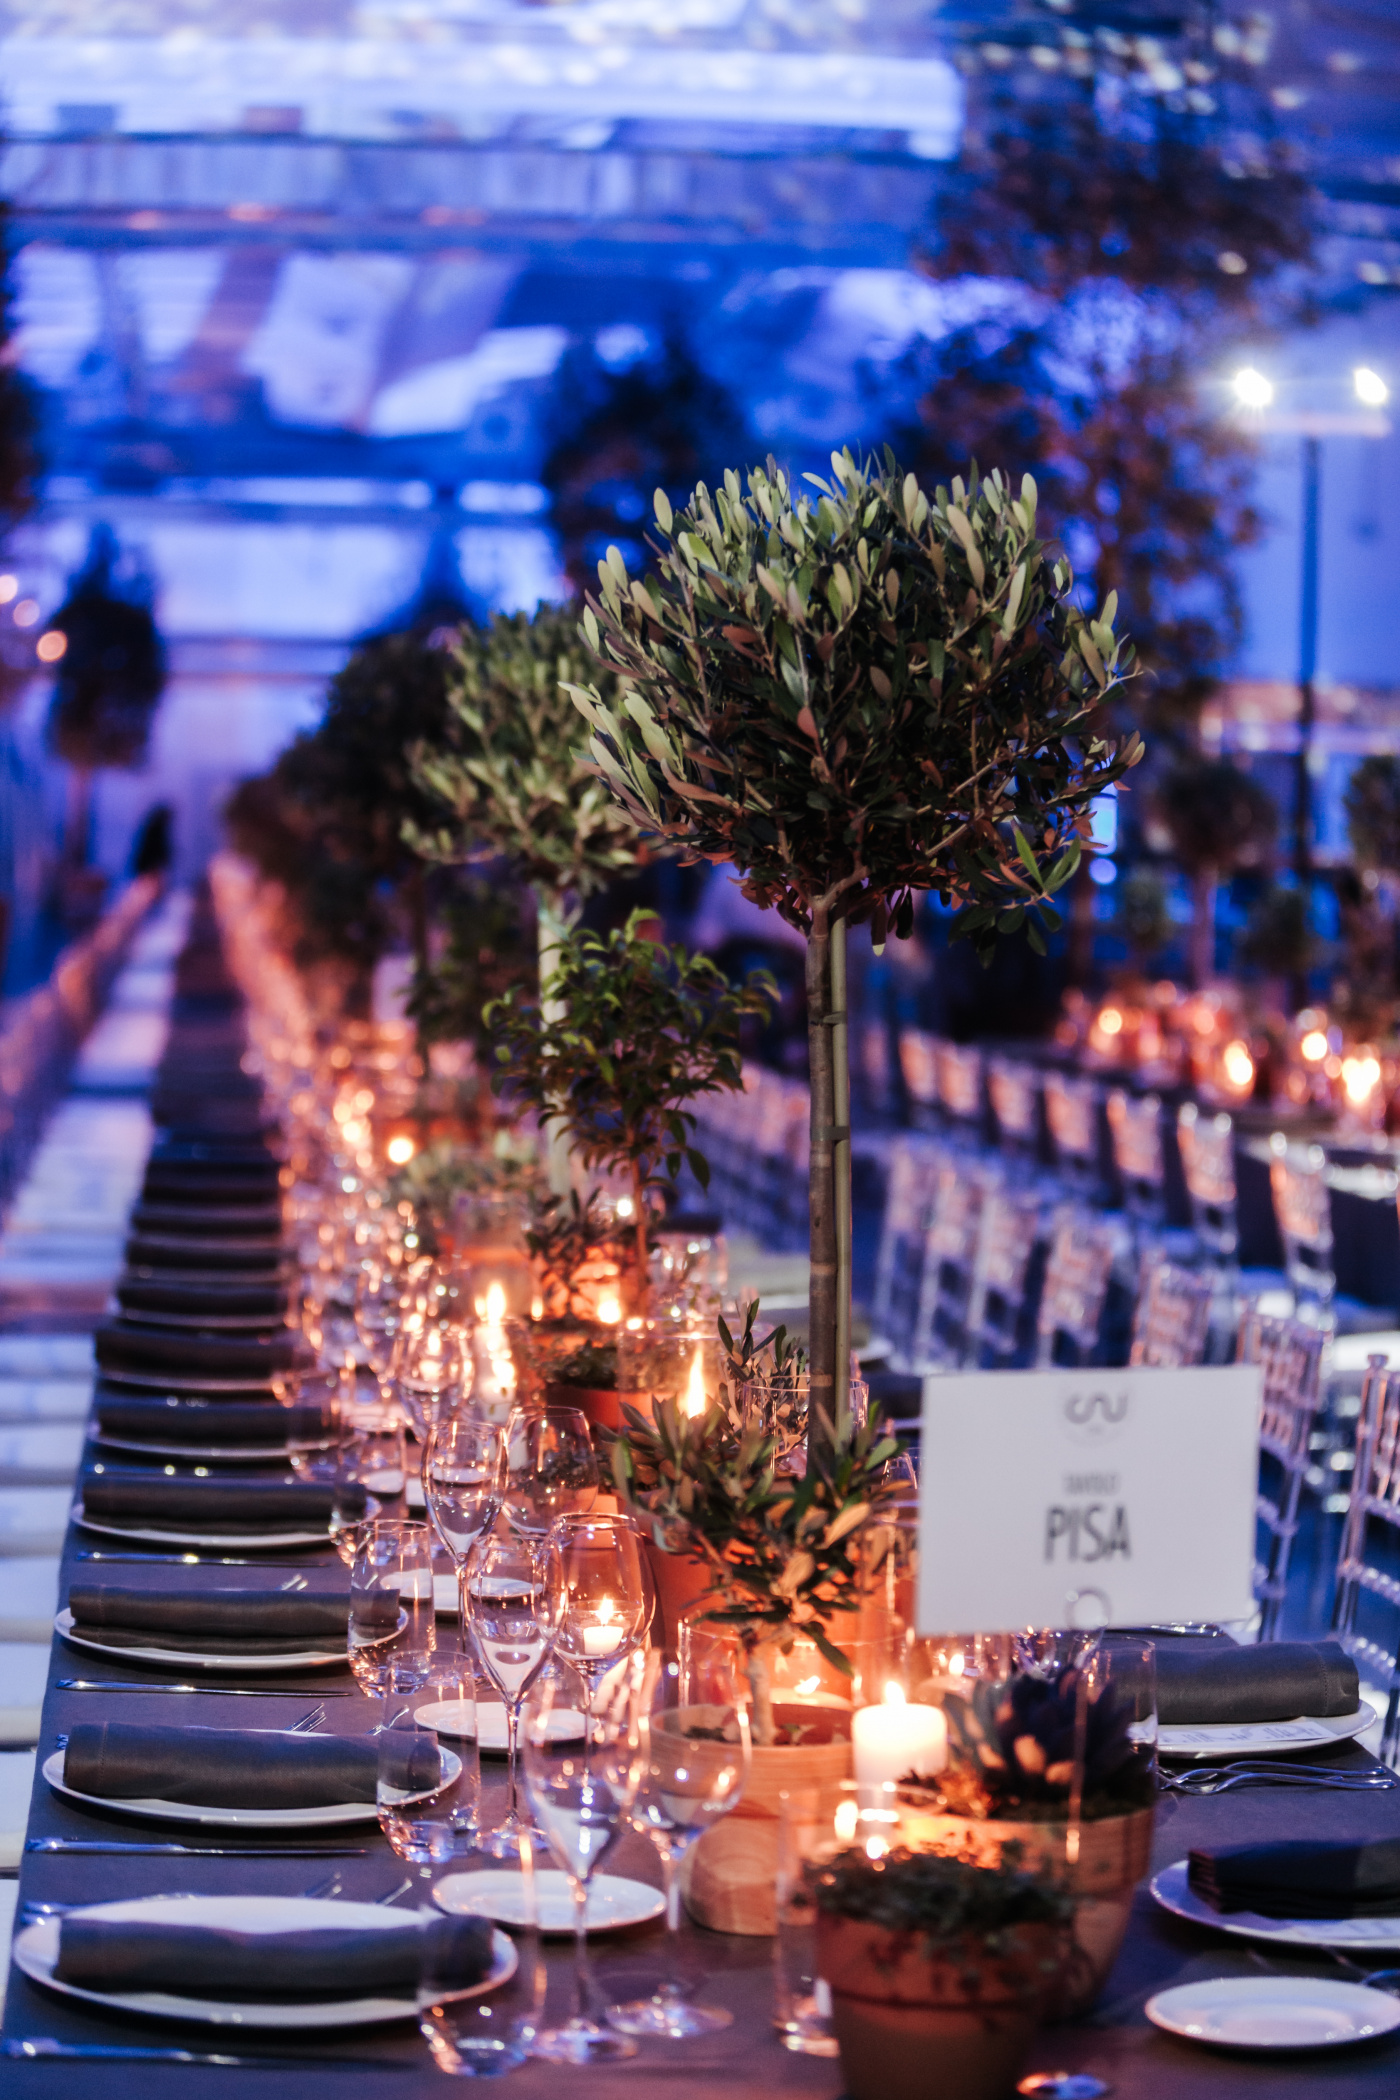 Olive plants and herbs with candles for a corporate event dinner